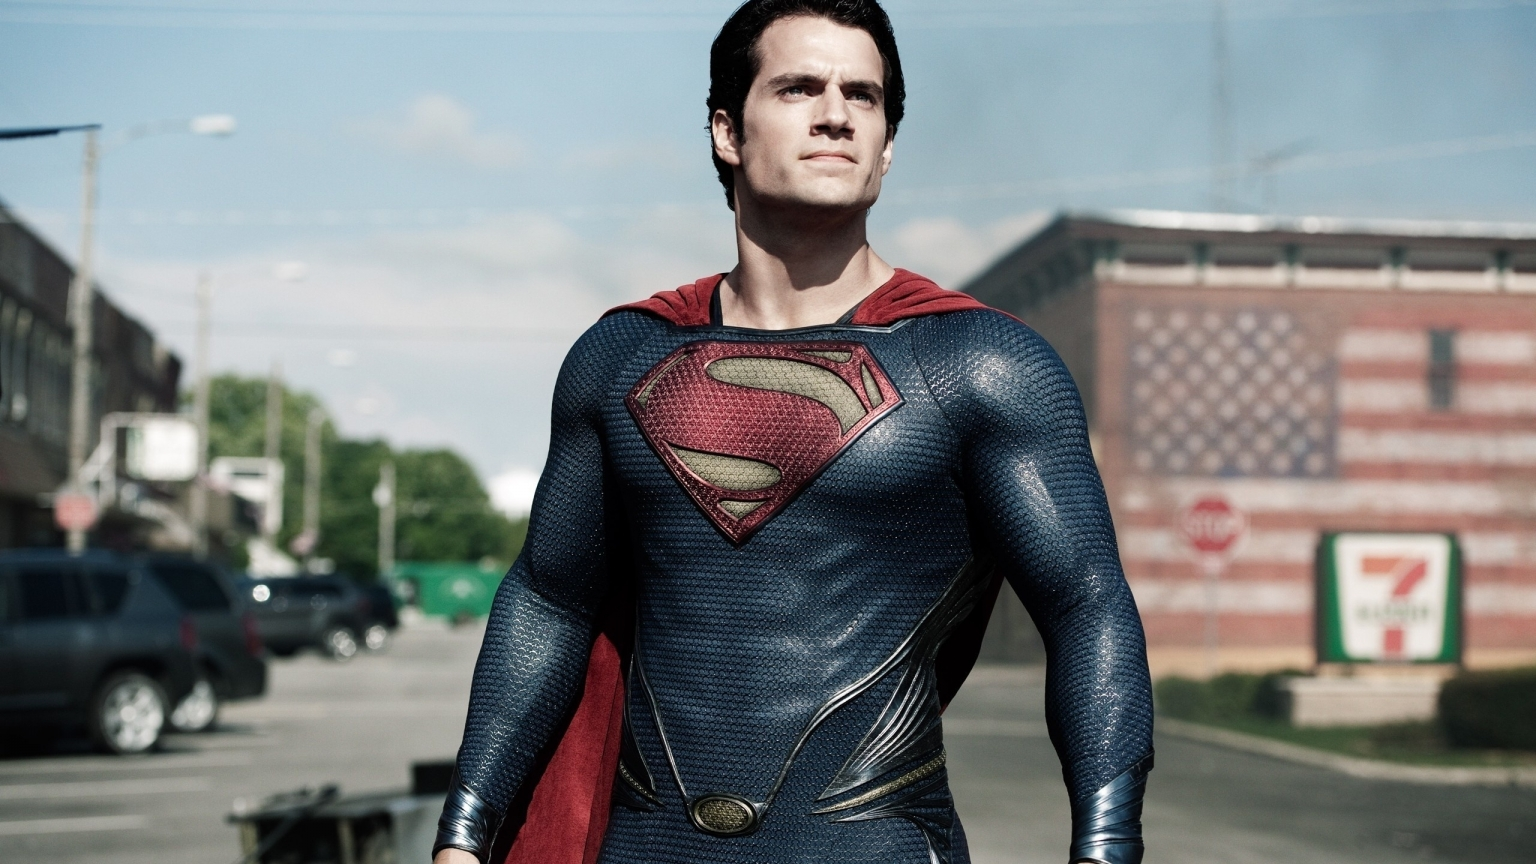 Man of Steel Pose for 1536 x 864 HDTV resolution